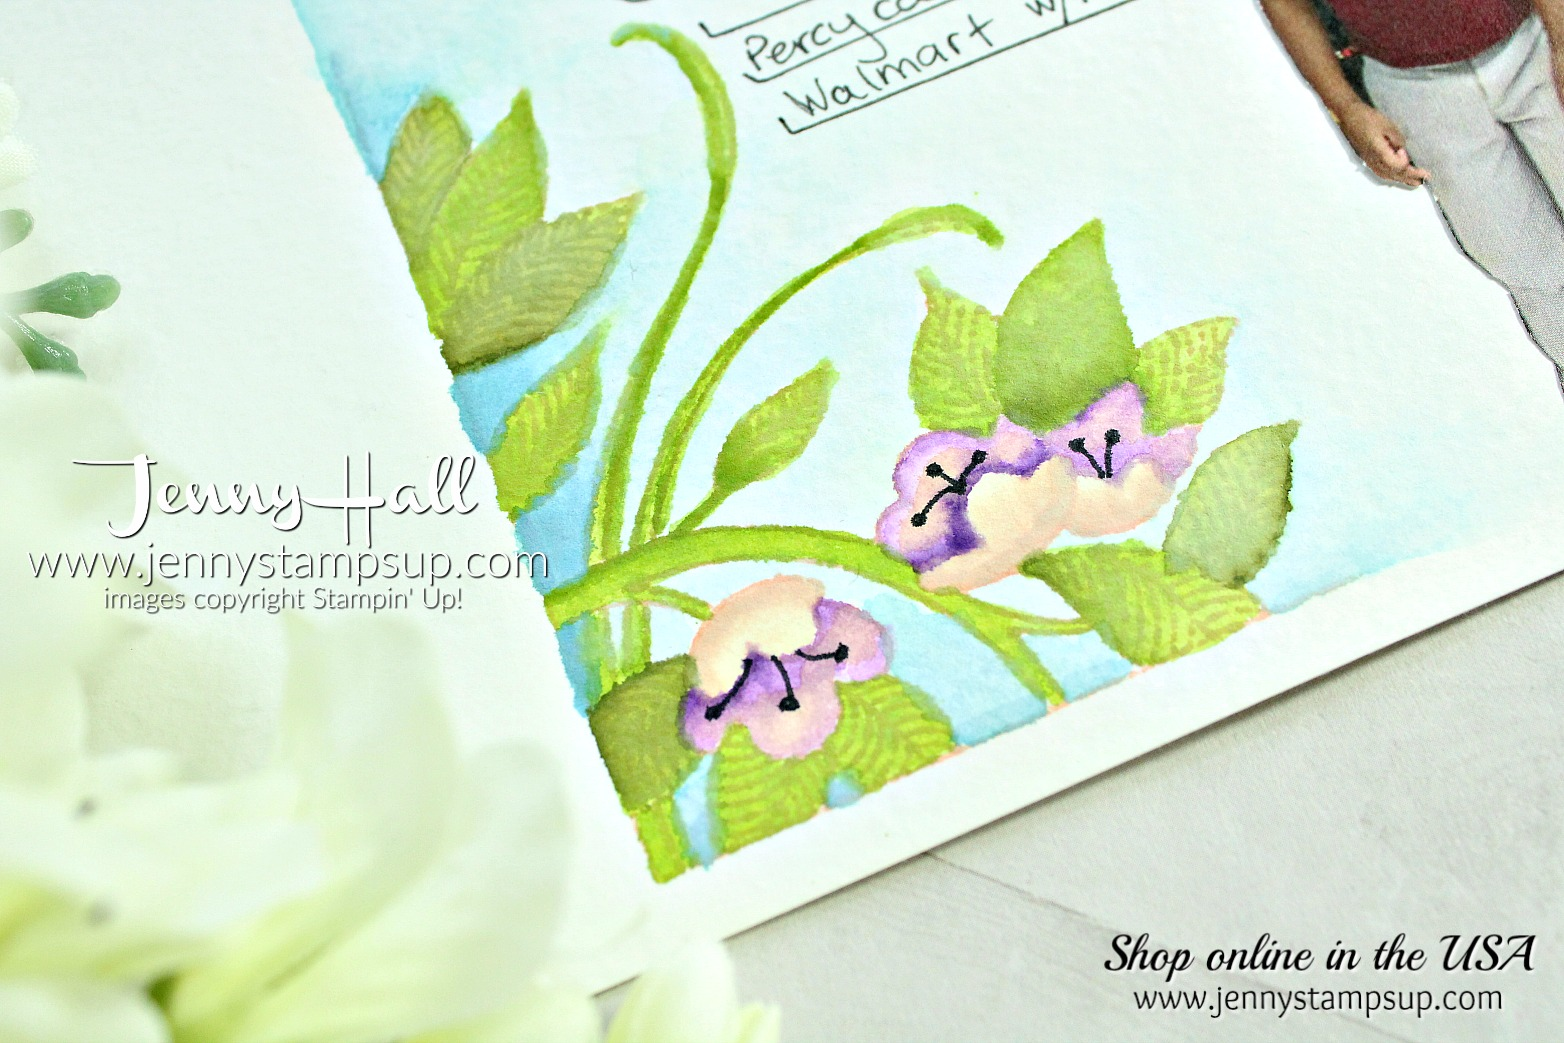 May Scrapbook Sunday Blog Hop page created by Jenny Hall at www.jennystampsup.com for #scrapbooking #serenegarden #watercolor #jennyhall #jenyhalldesign #jennystapsup #stamping #stampinup